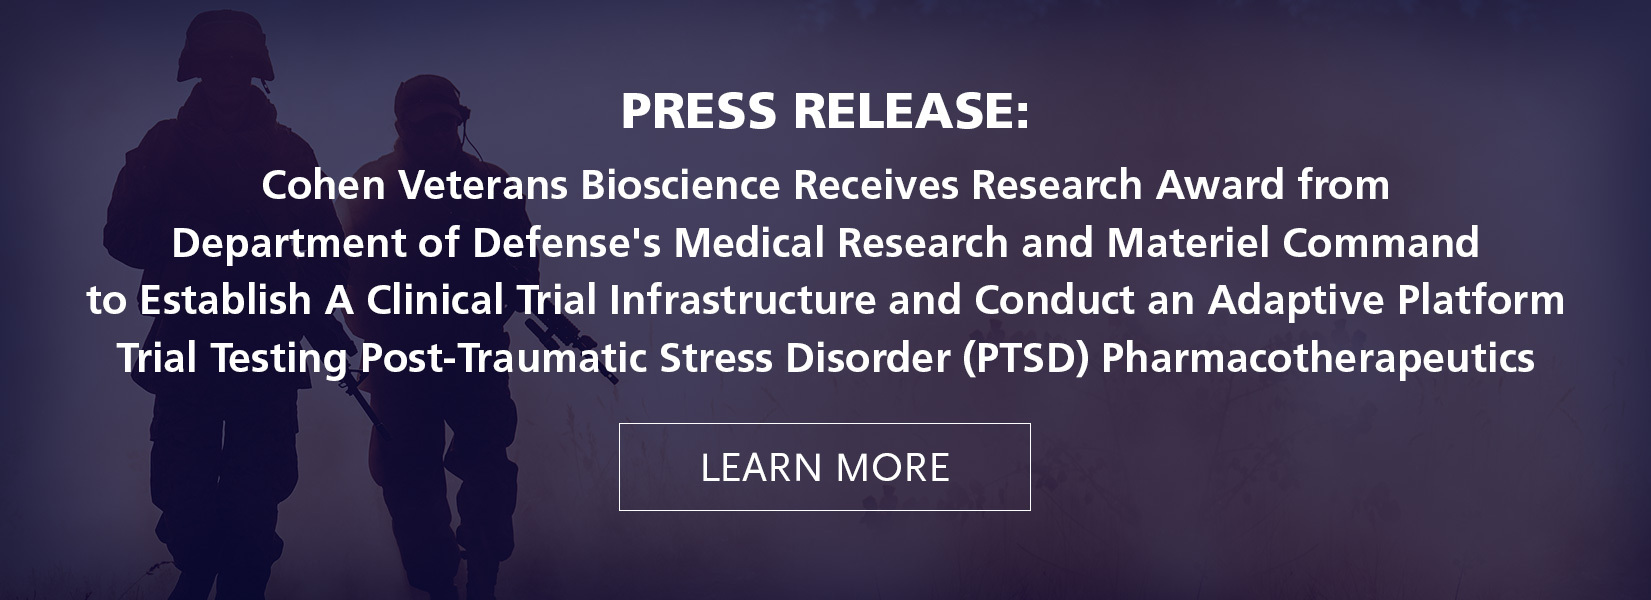 Cohen Veterans Bioscience Receives Research Award from Department of Defense